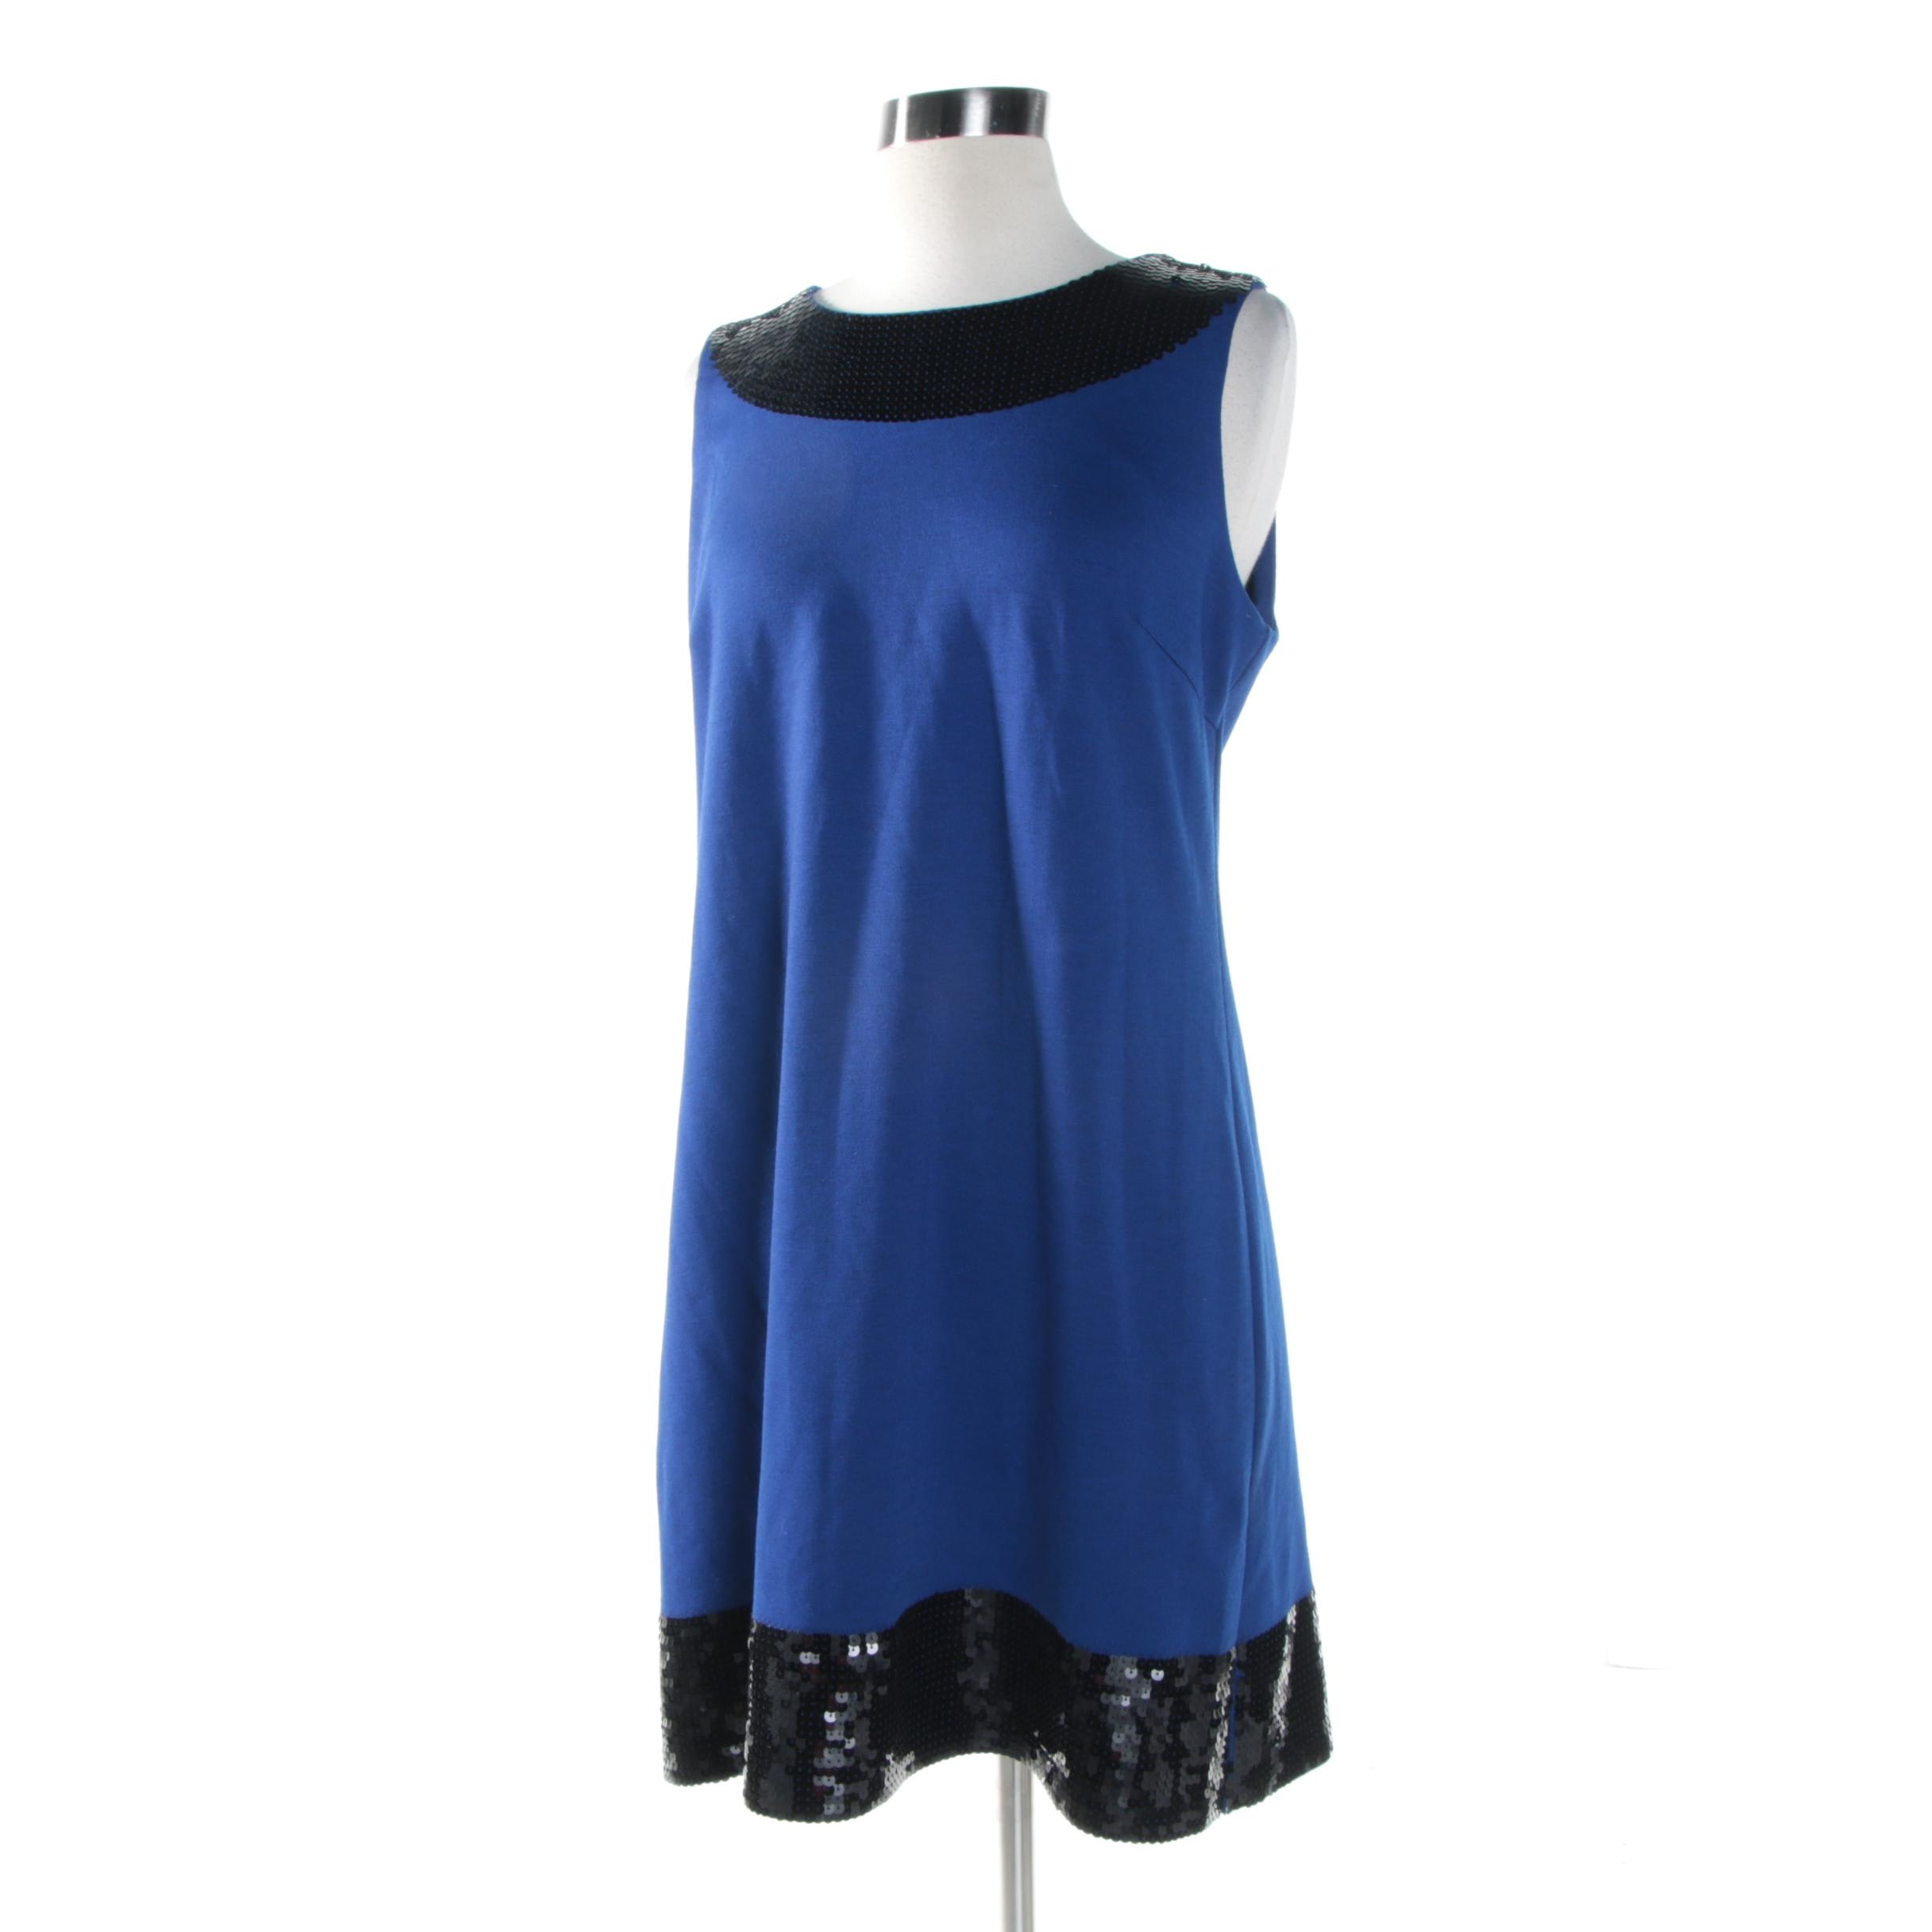 Julie Brown Cobalt Blue and Black Sequined Sleeveless Cocktail Dress